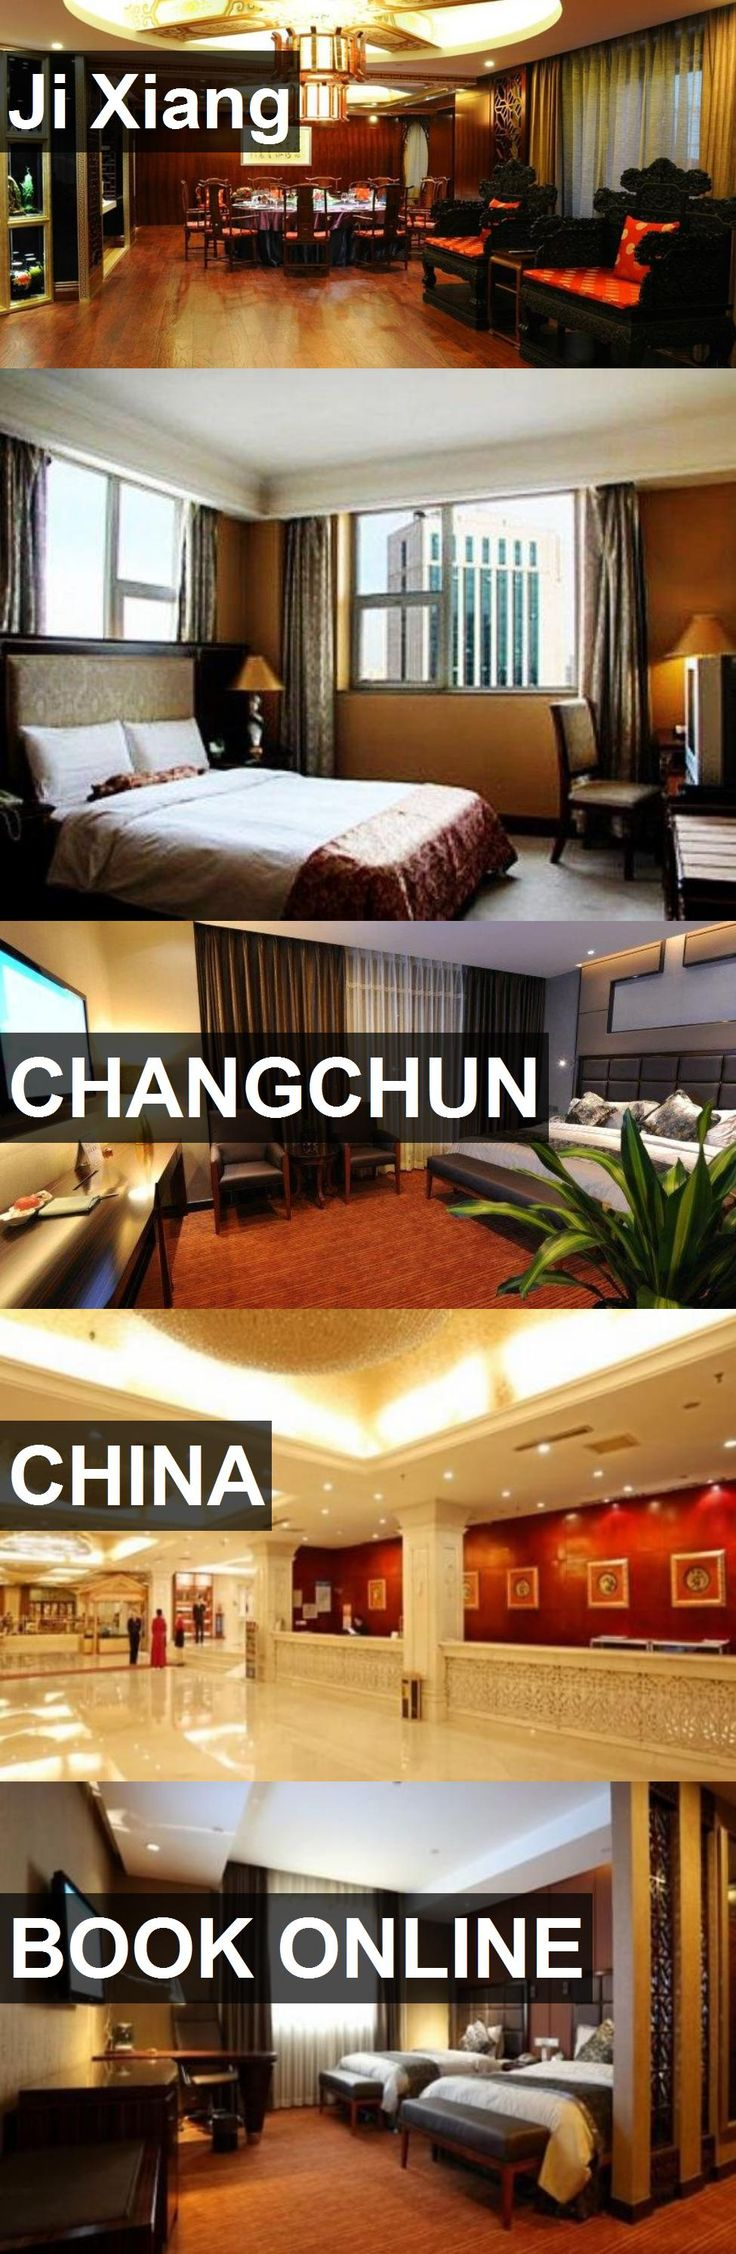 Hotel Ji Xiang in Changchun, China. For more information, photos, reviews and best prices please follow the link. #China #Changchun #travel #vacation #hotel